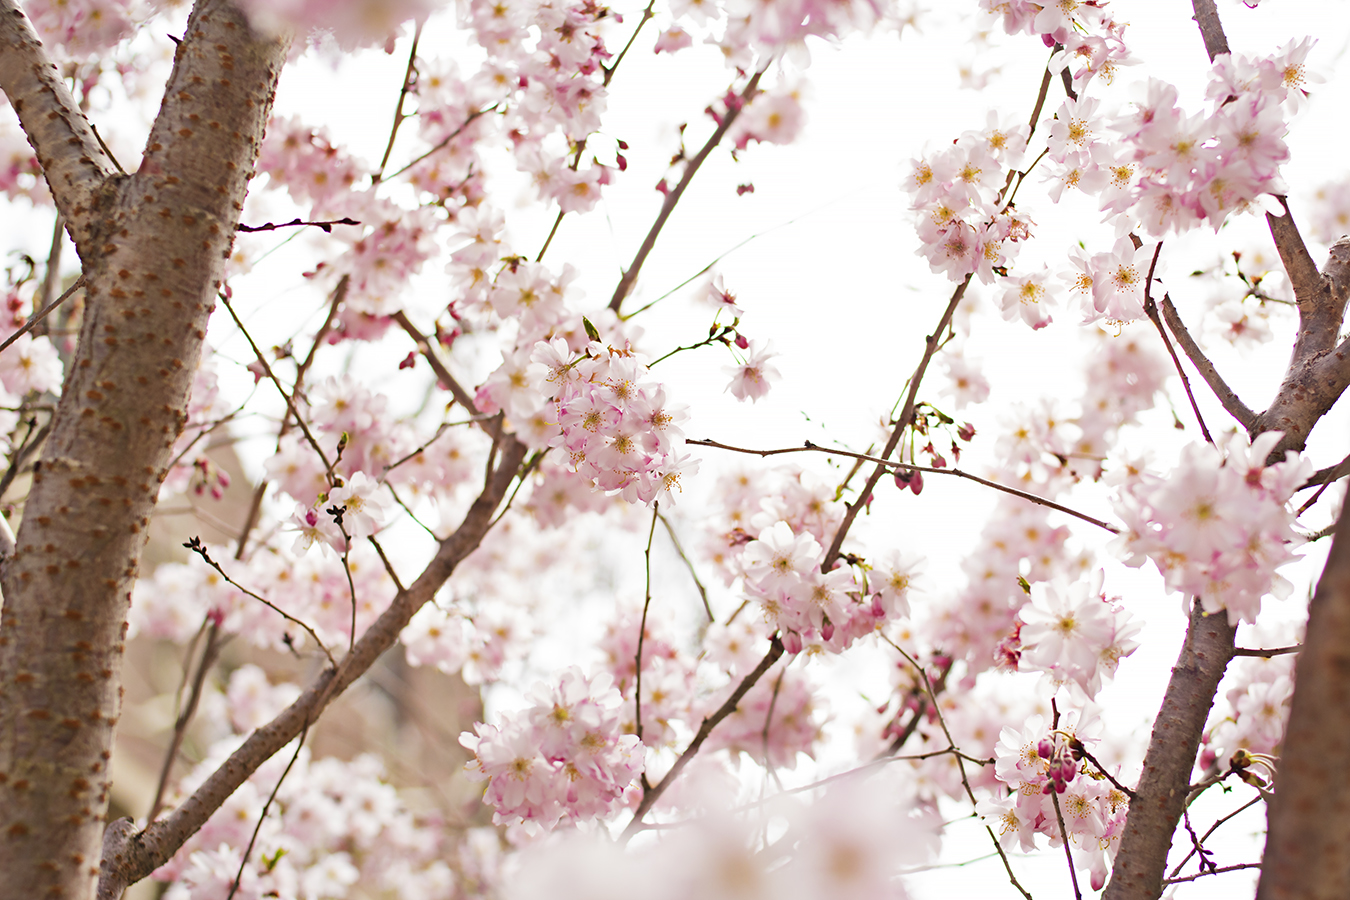 Eileen_Ko_Assignment_4_Pink_Flowers_Branches_Trees